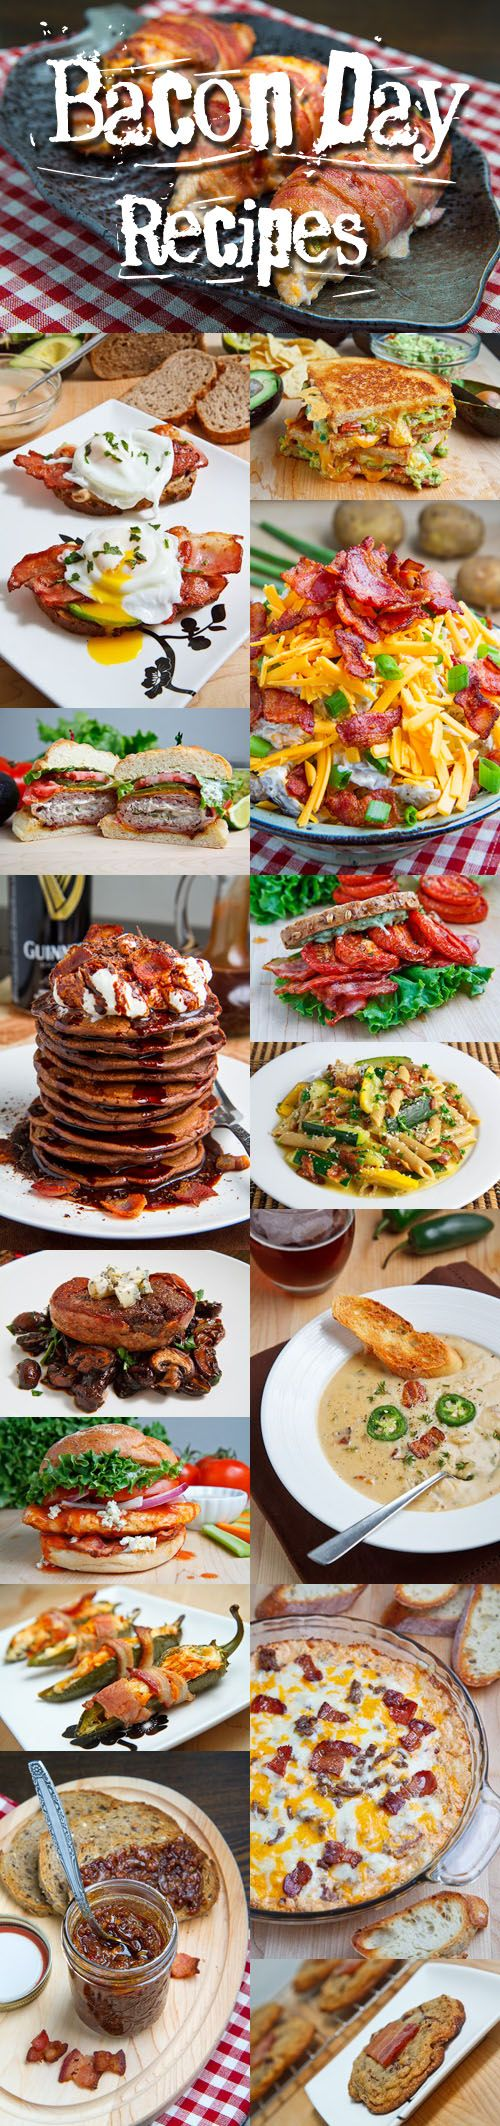 Bacon Day Recipes ~ OMG ~ Fantabulous recipes where bacon is the star ~ from Maple Bourbon Bacon Jam to Asparagus and Double Smoked Bacon Popovers & everything in-between ~ Enjoy!!!